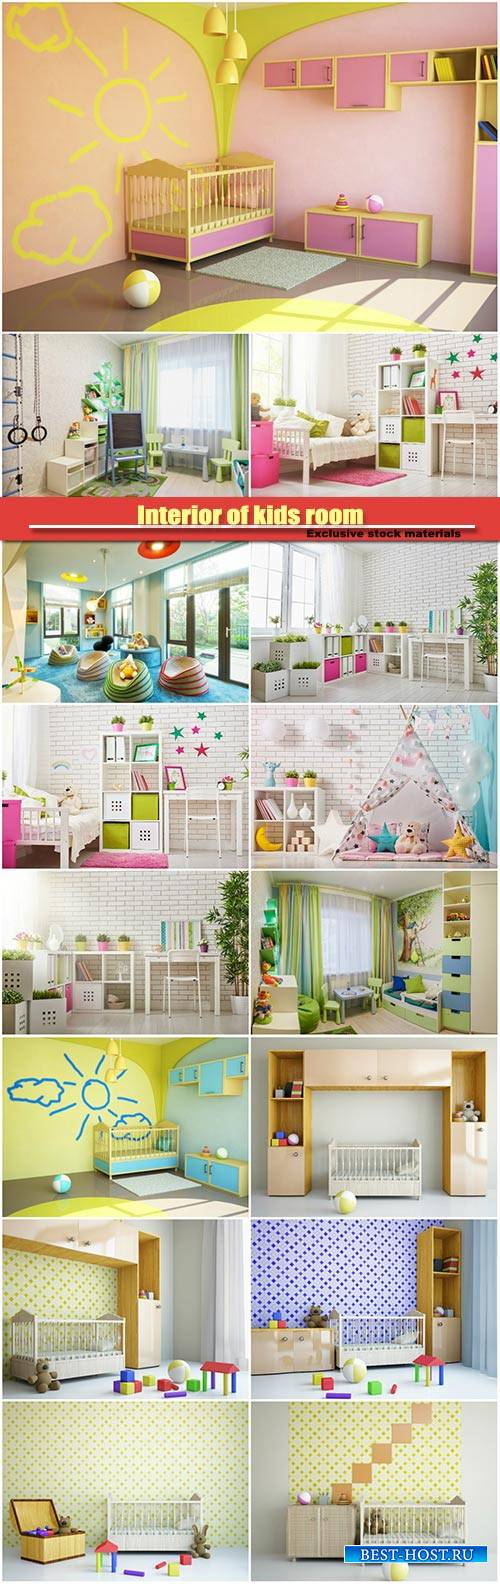 Interior of kids room